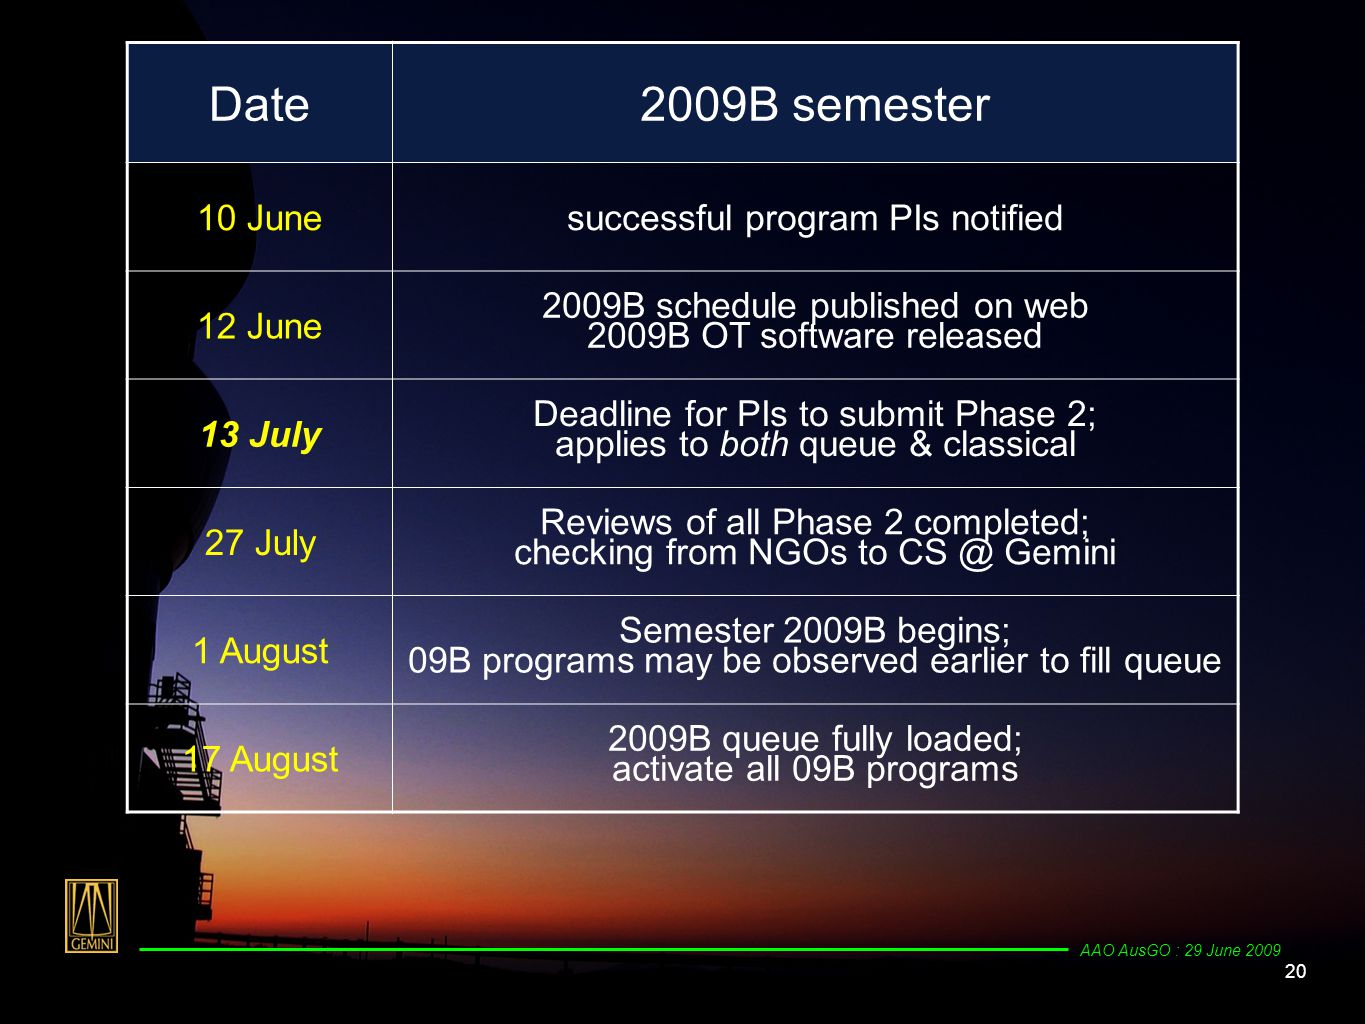 20 AAO AusGO : 29 June 2009 Date2009B semester 10 Junesuccessful program PIs notified 12 June 2009B schedule published on web 2009B OT software released 13 July Deadline for PIs to submit Phase 2; applies to both queue & classical 27 July Reviews of all Phase 2 completed; checking from NGOs to CS @ Gemini 1 August Semester 2009B begins; 09B programs may be observed earlier to fill queue 17 August 2009B queue fully loaded; activate all 09B programs